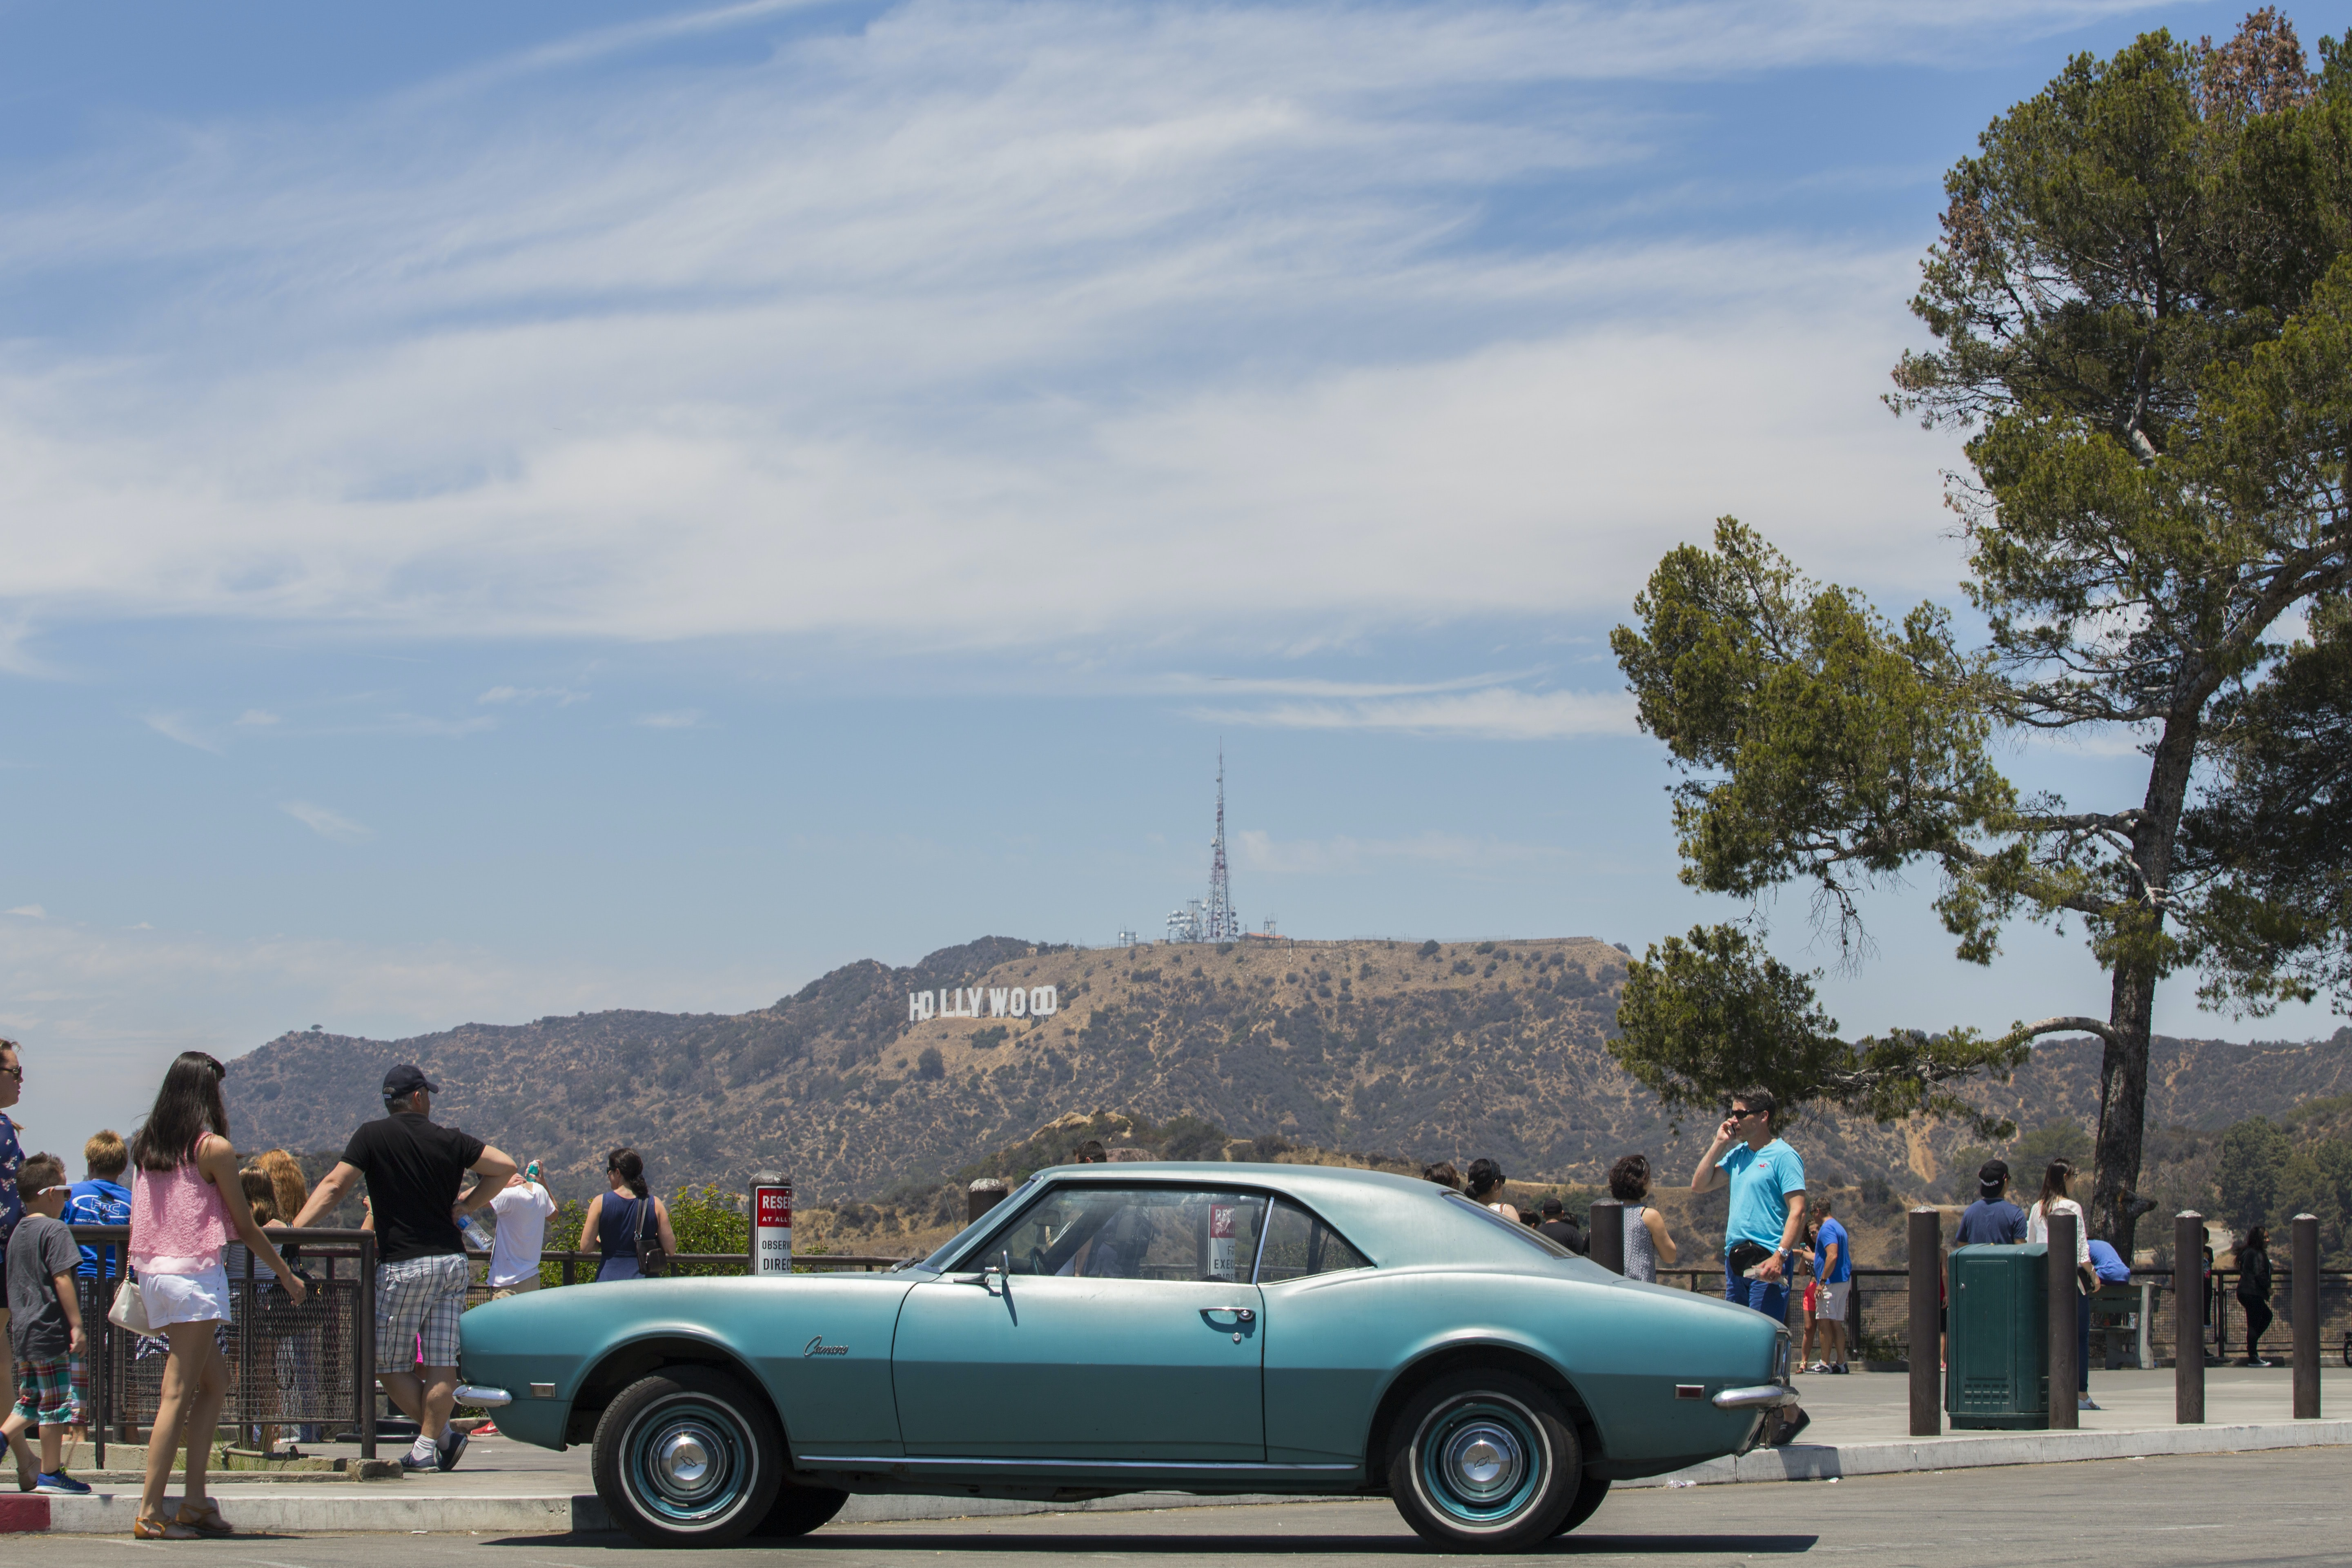 classic blue coupe on road beside people at near Hollywood sign at California during daytime